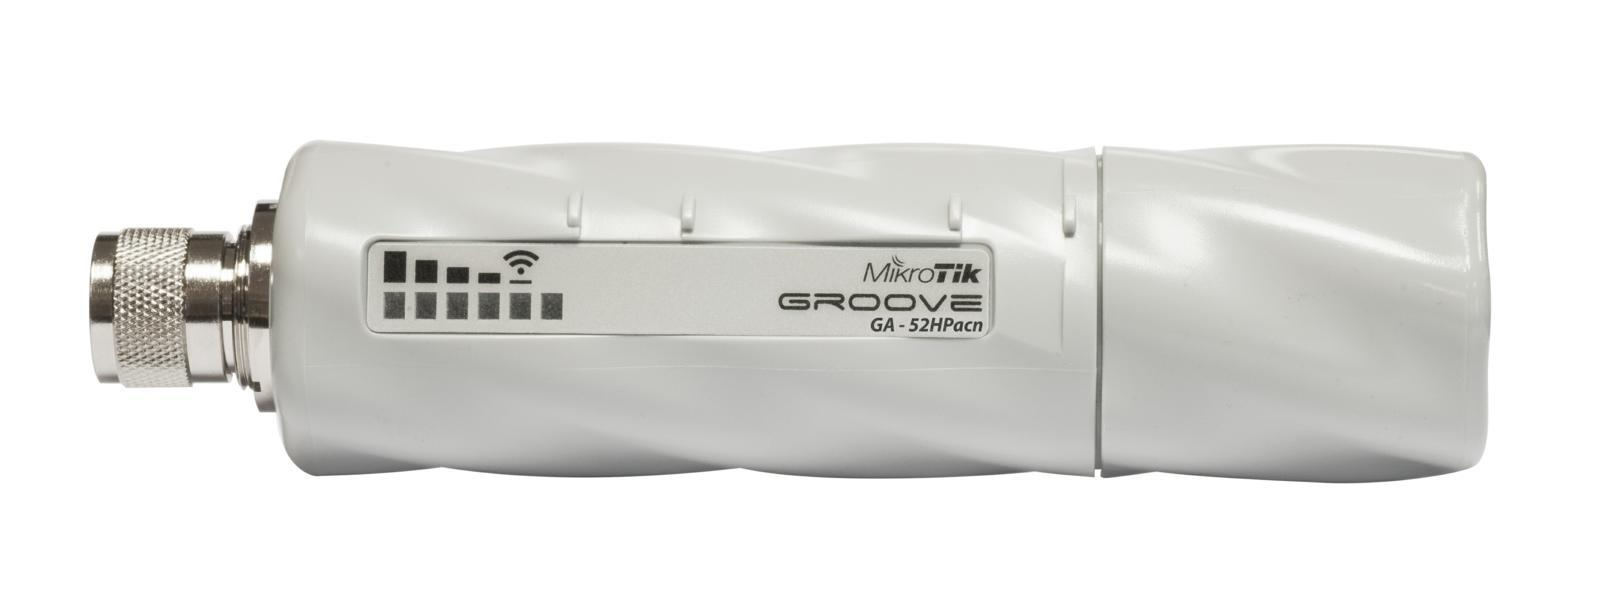 SICE Distributore Ufficiale  Wireless systems Groove 52 ac 720MHz CPU64MB RAM 1GLAN 1x 802.11a/b/g/n/ac L3 | RBGROOVEG-52HPAC